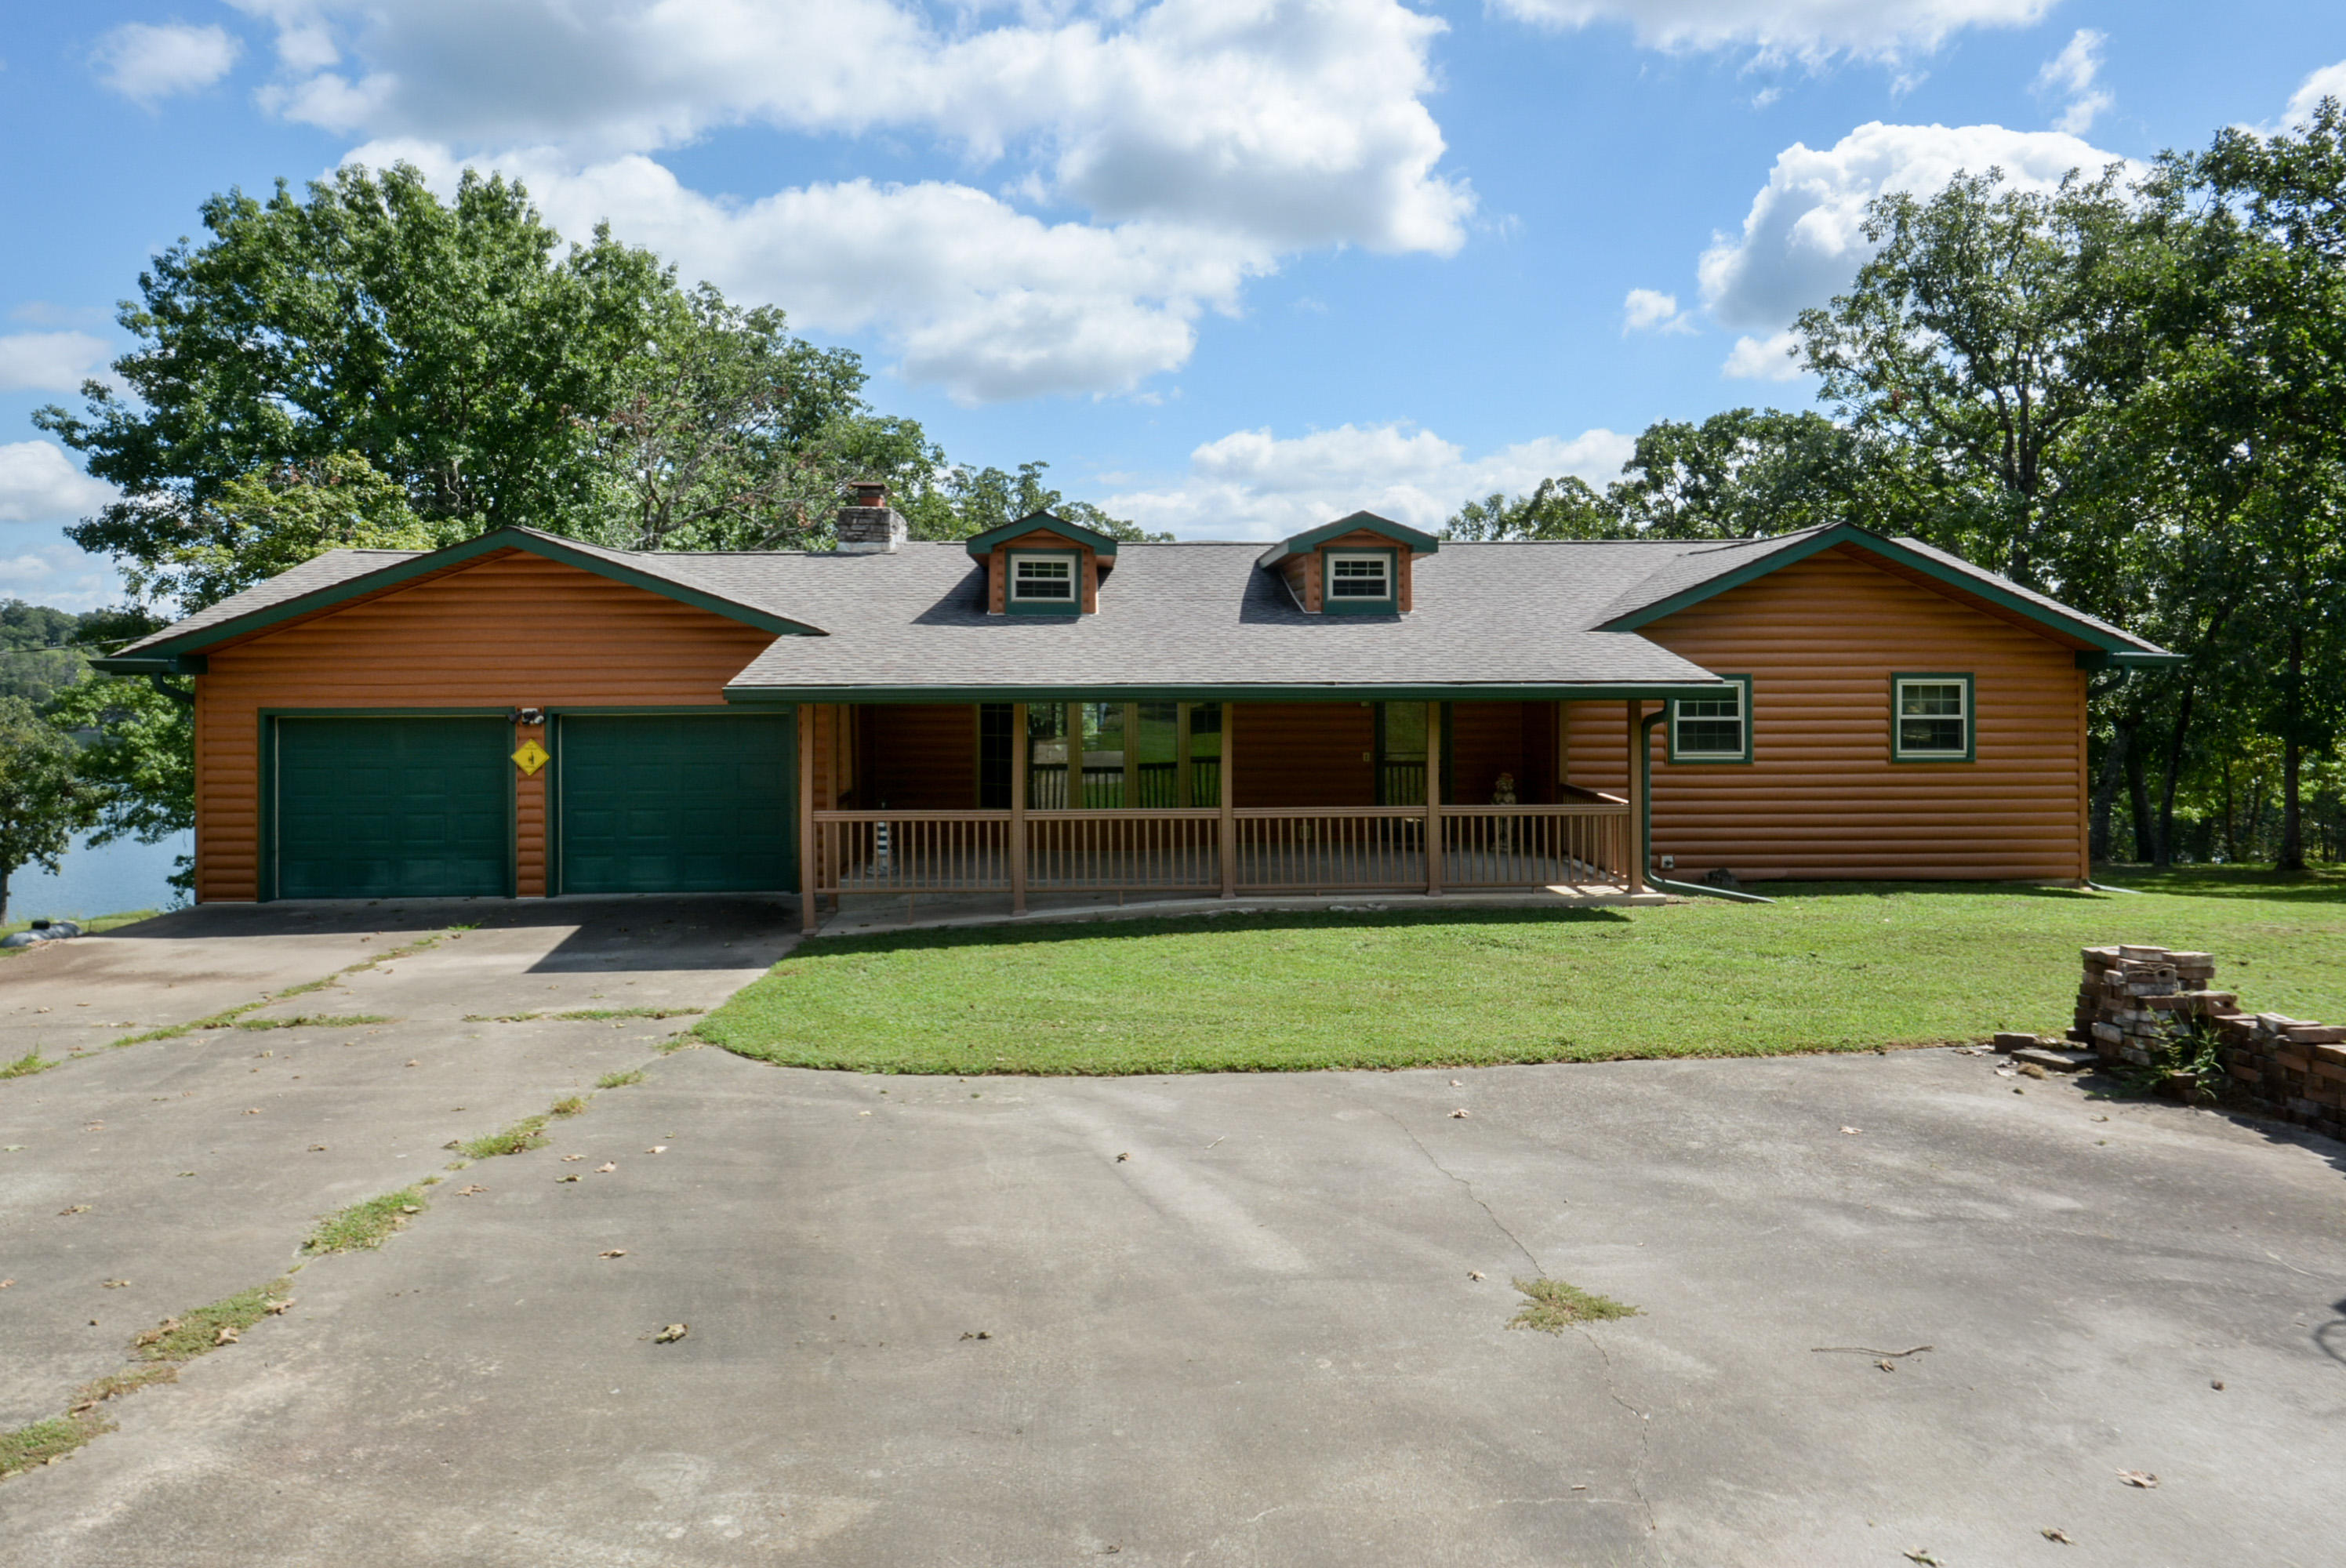 21409 Farm Road 2260 Eagle Rock, MO 65641